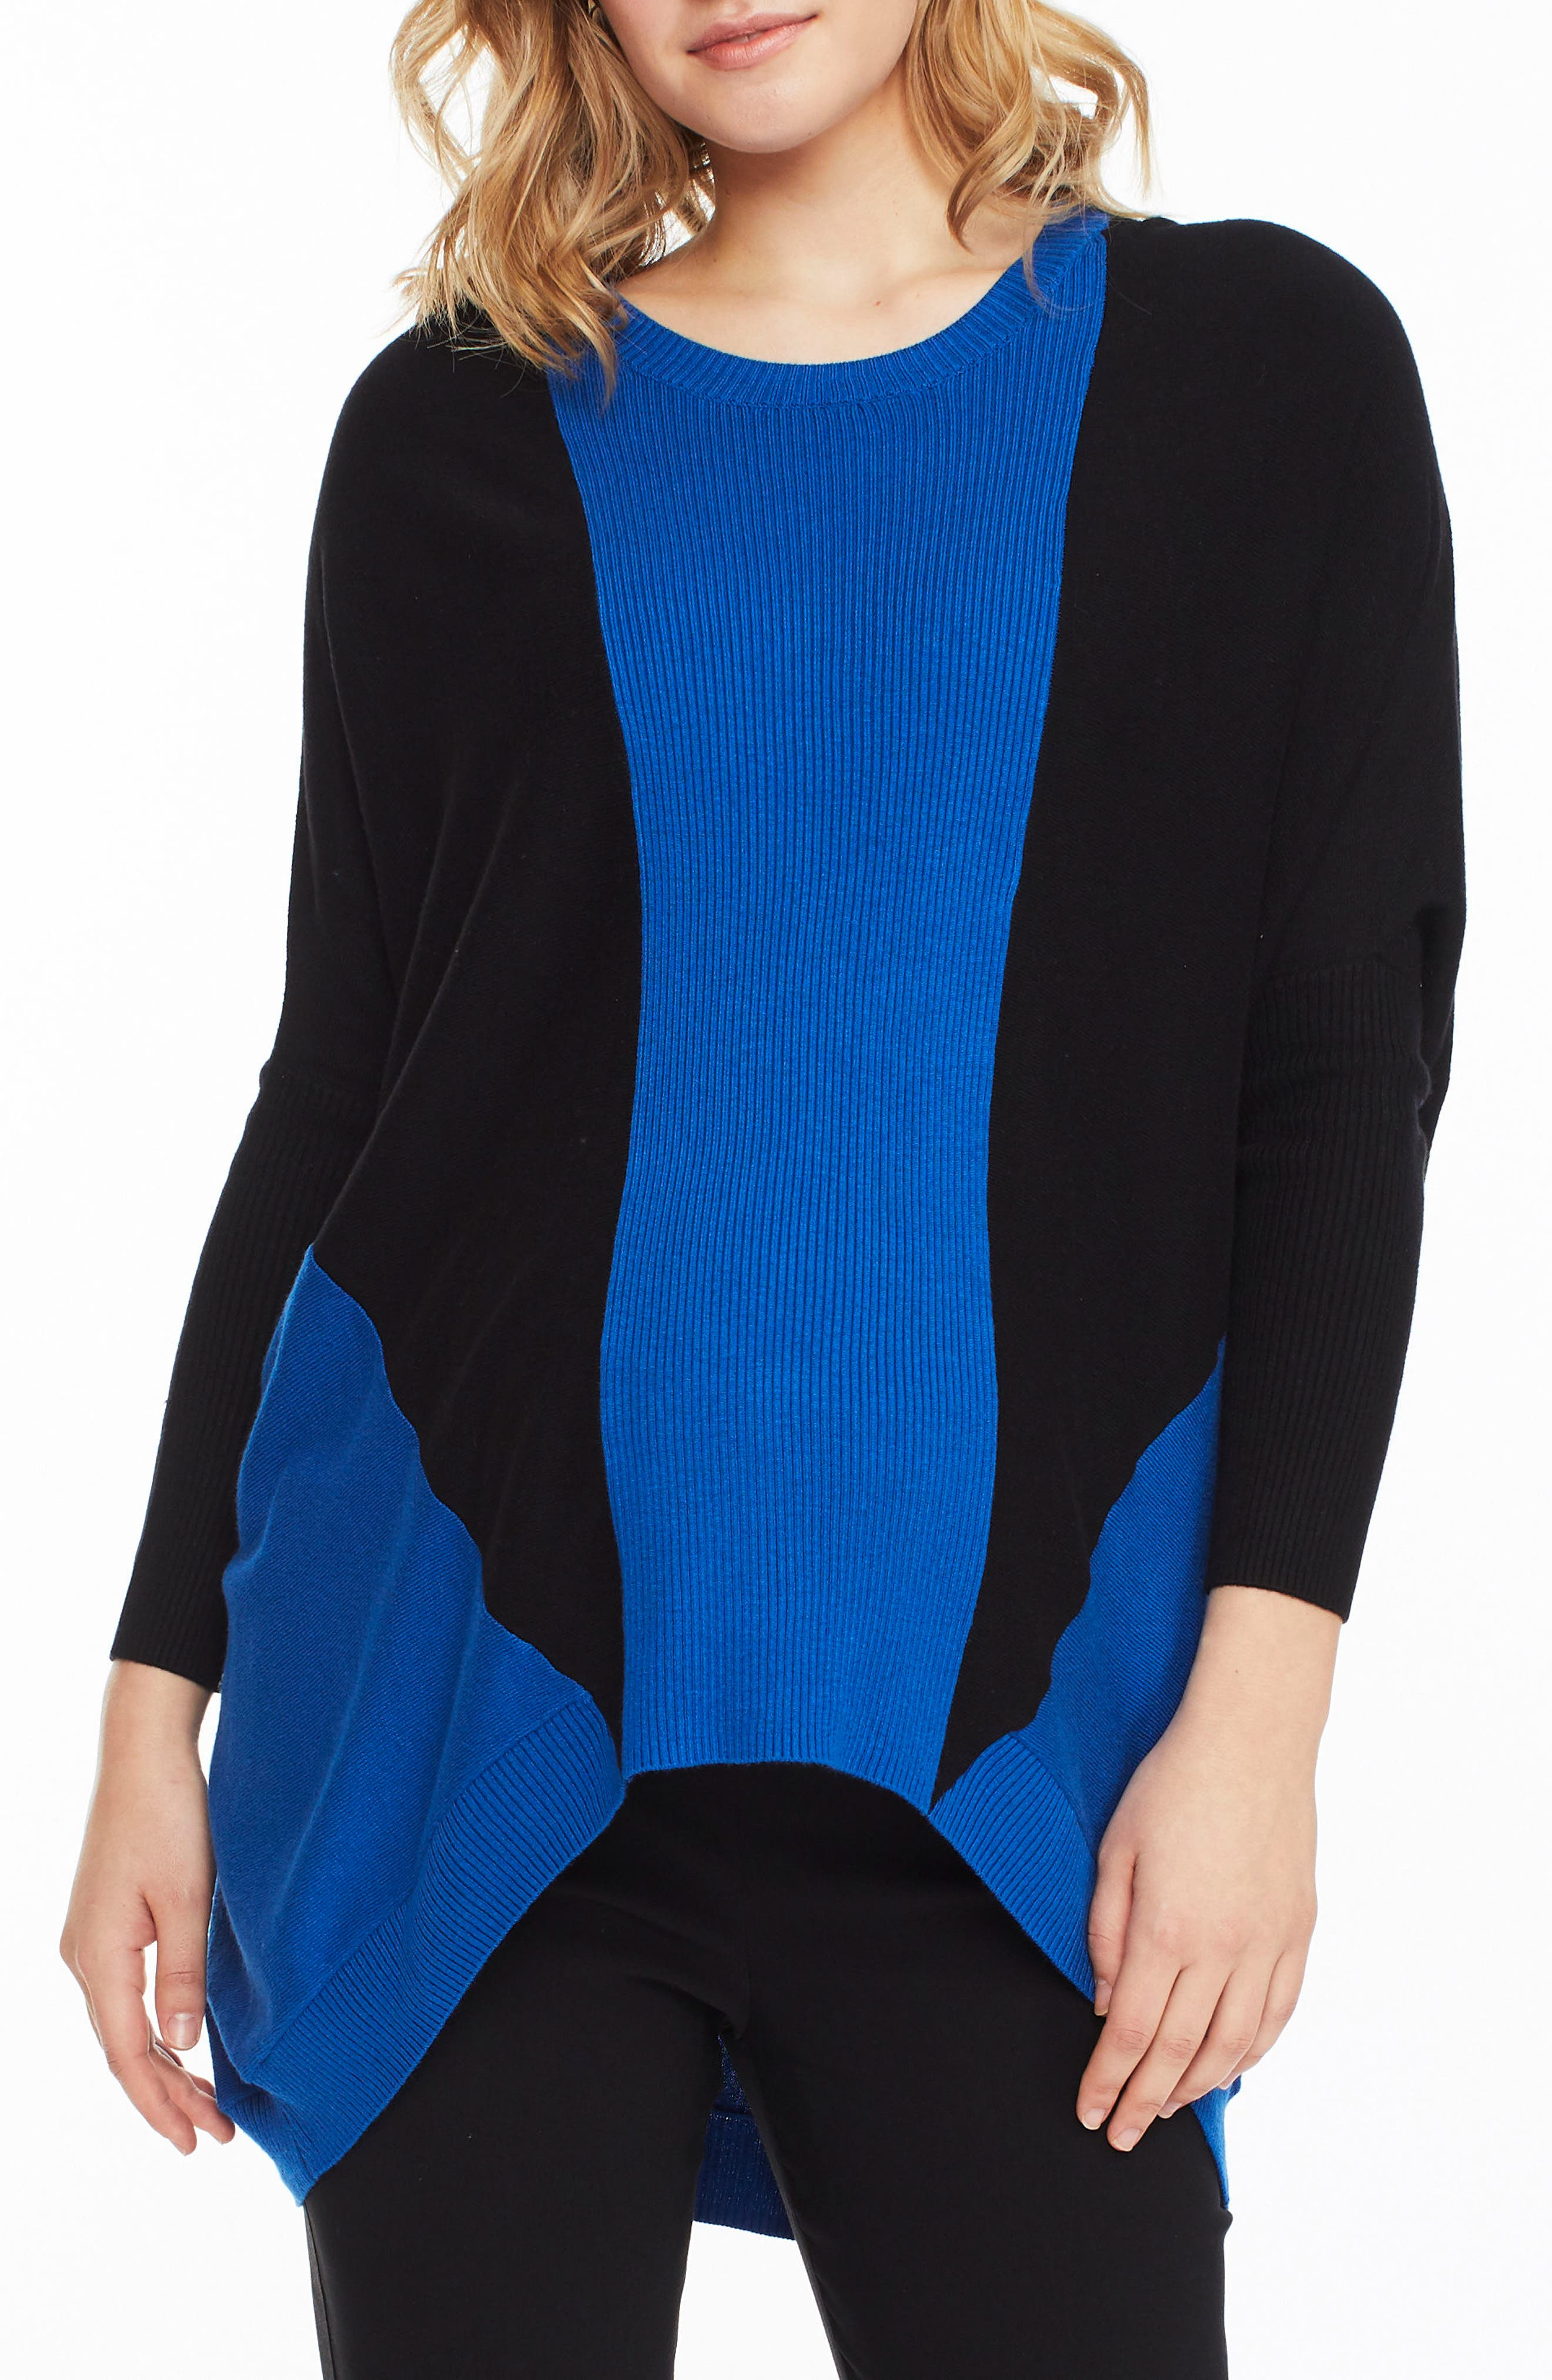 Rosie Pope Hazel Colorblock Maternity Sweater